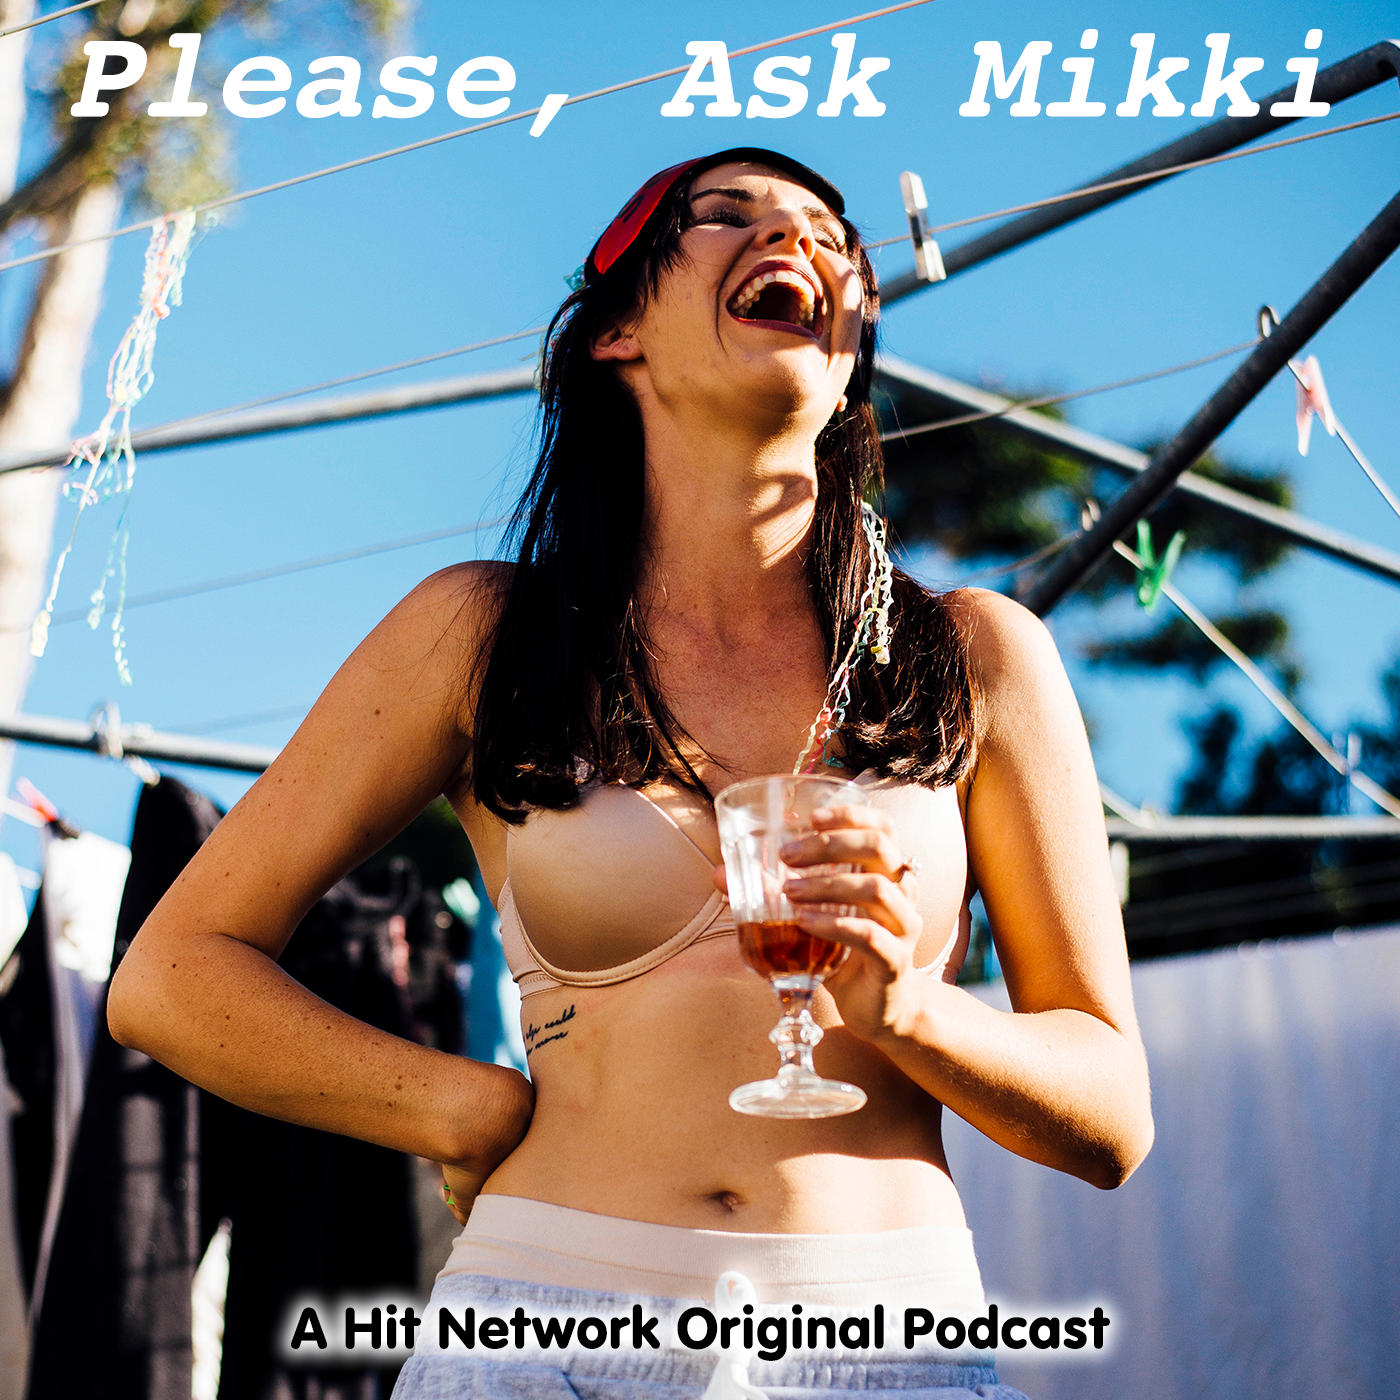 PleaseAskMikkiPodcastCover.png